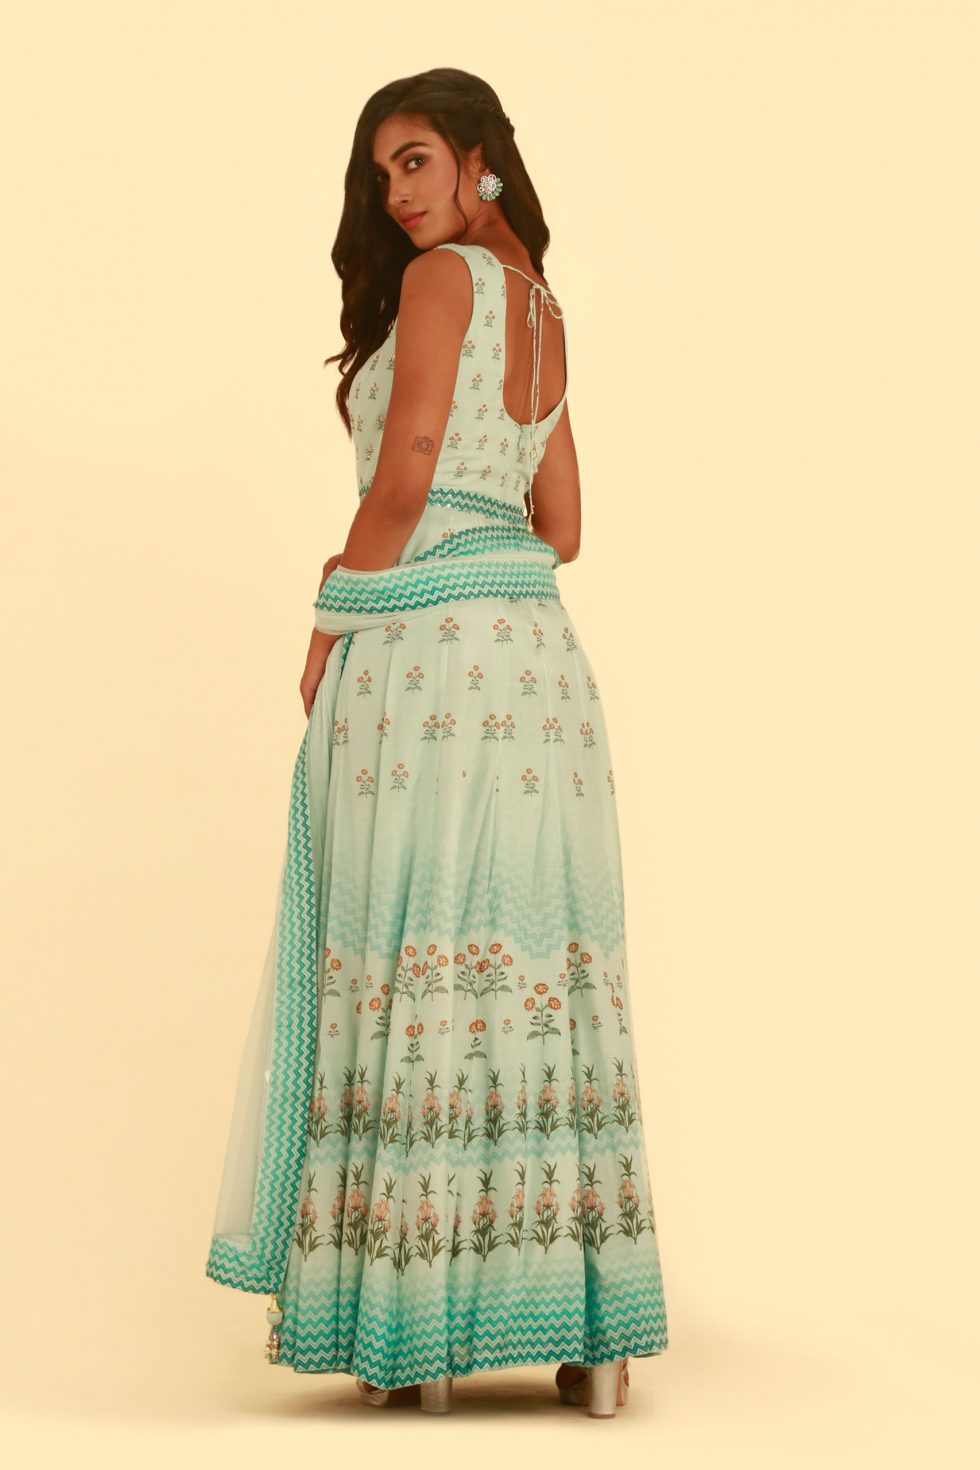 Mint green printed Anarkali gown set with matching dupatta and gold embellishments